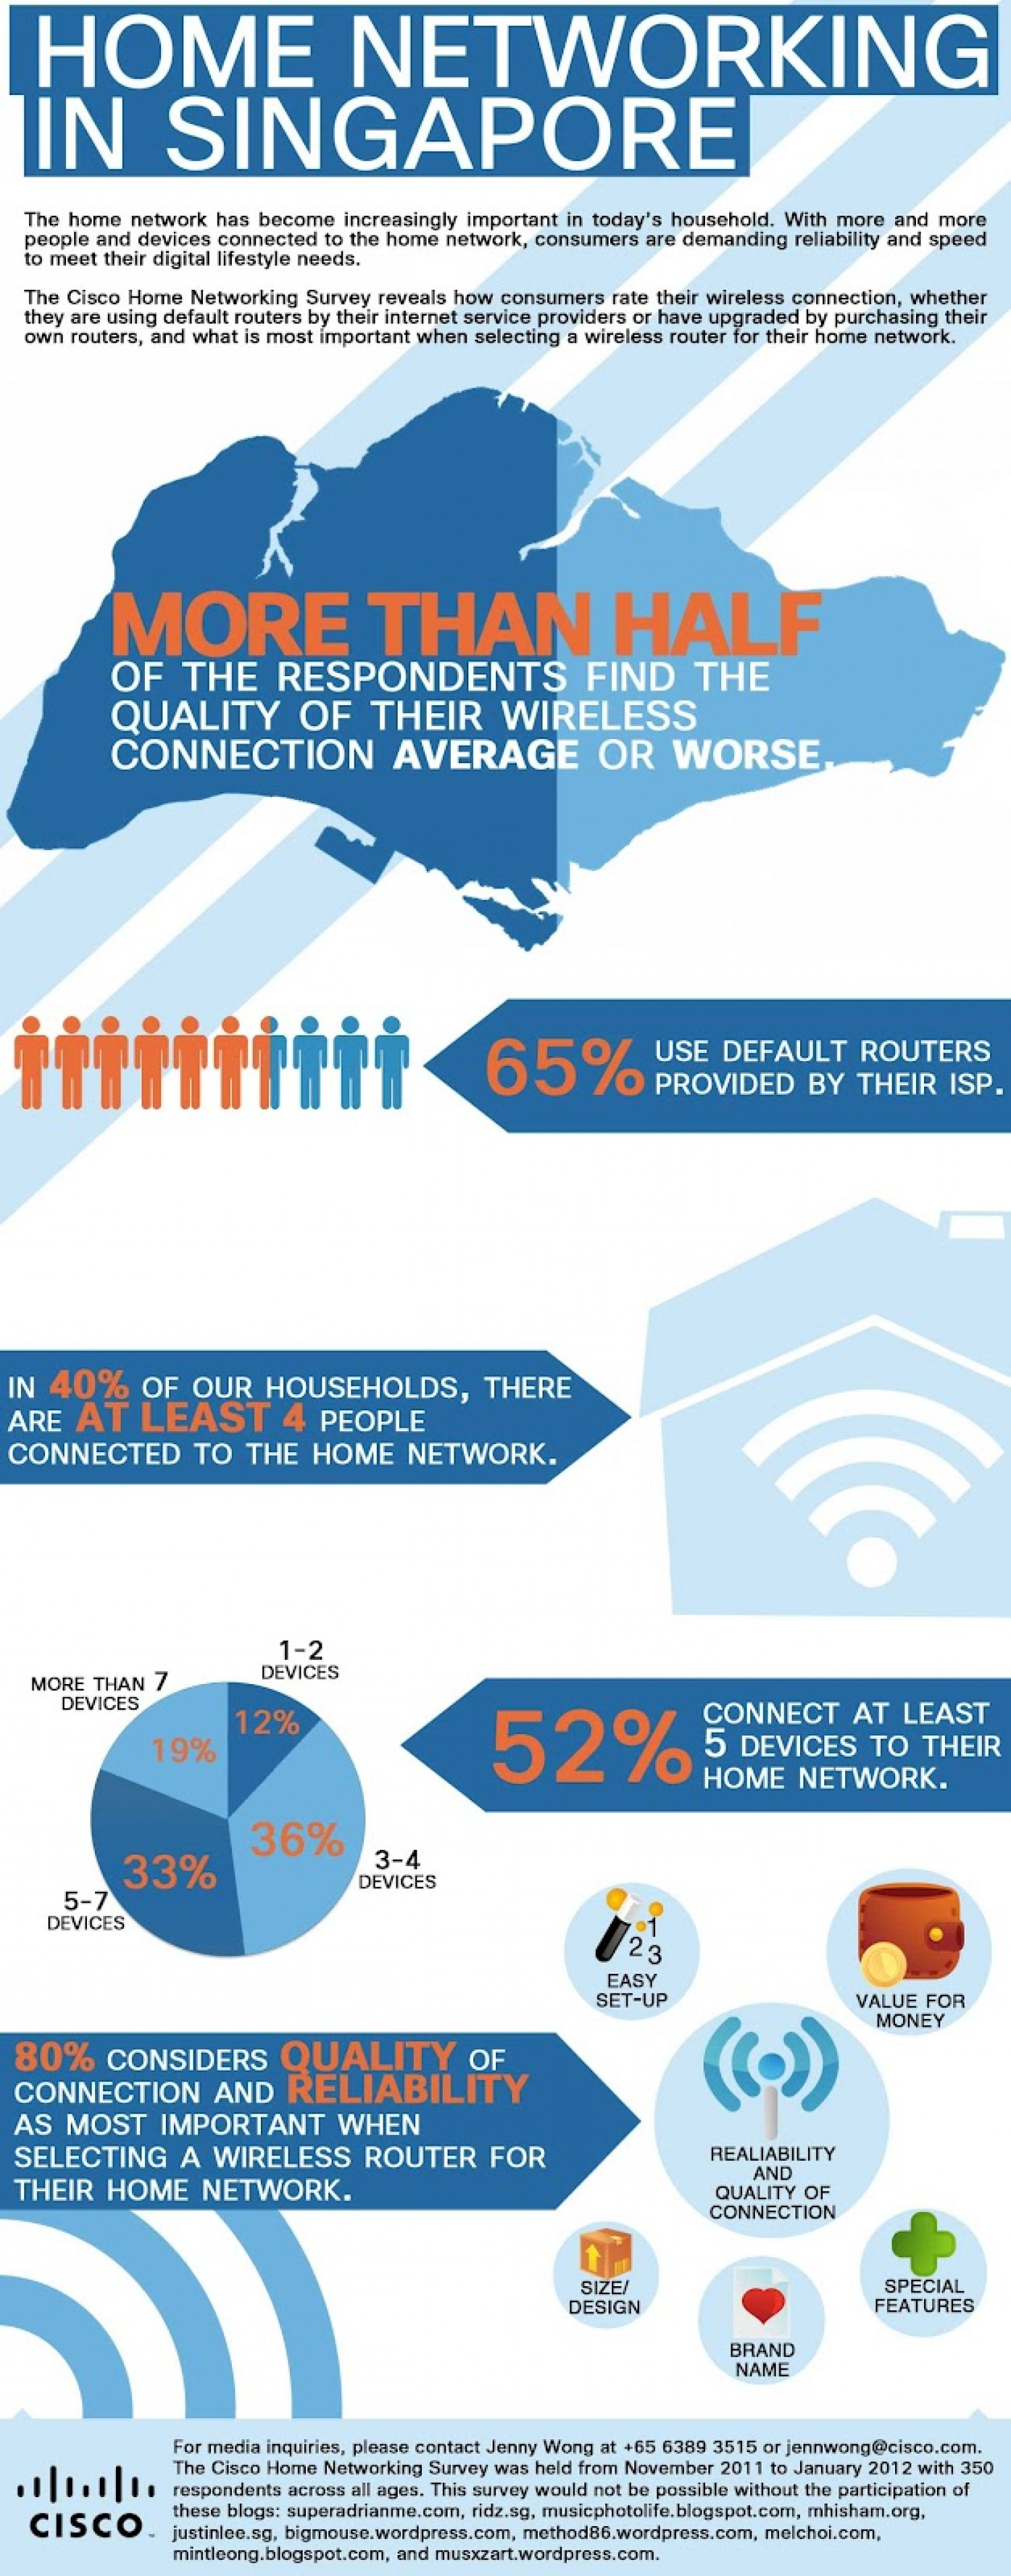 8. Home Networking in Singapore